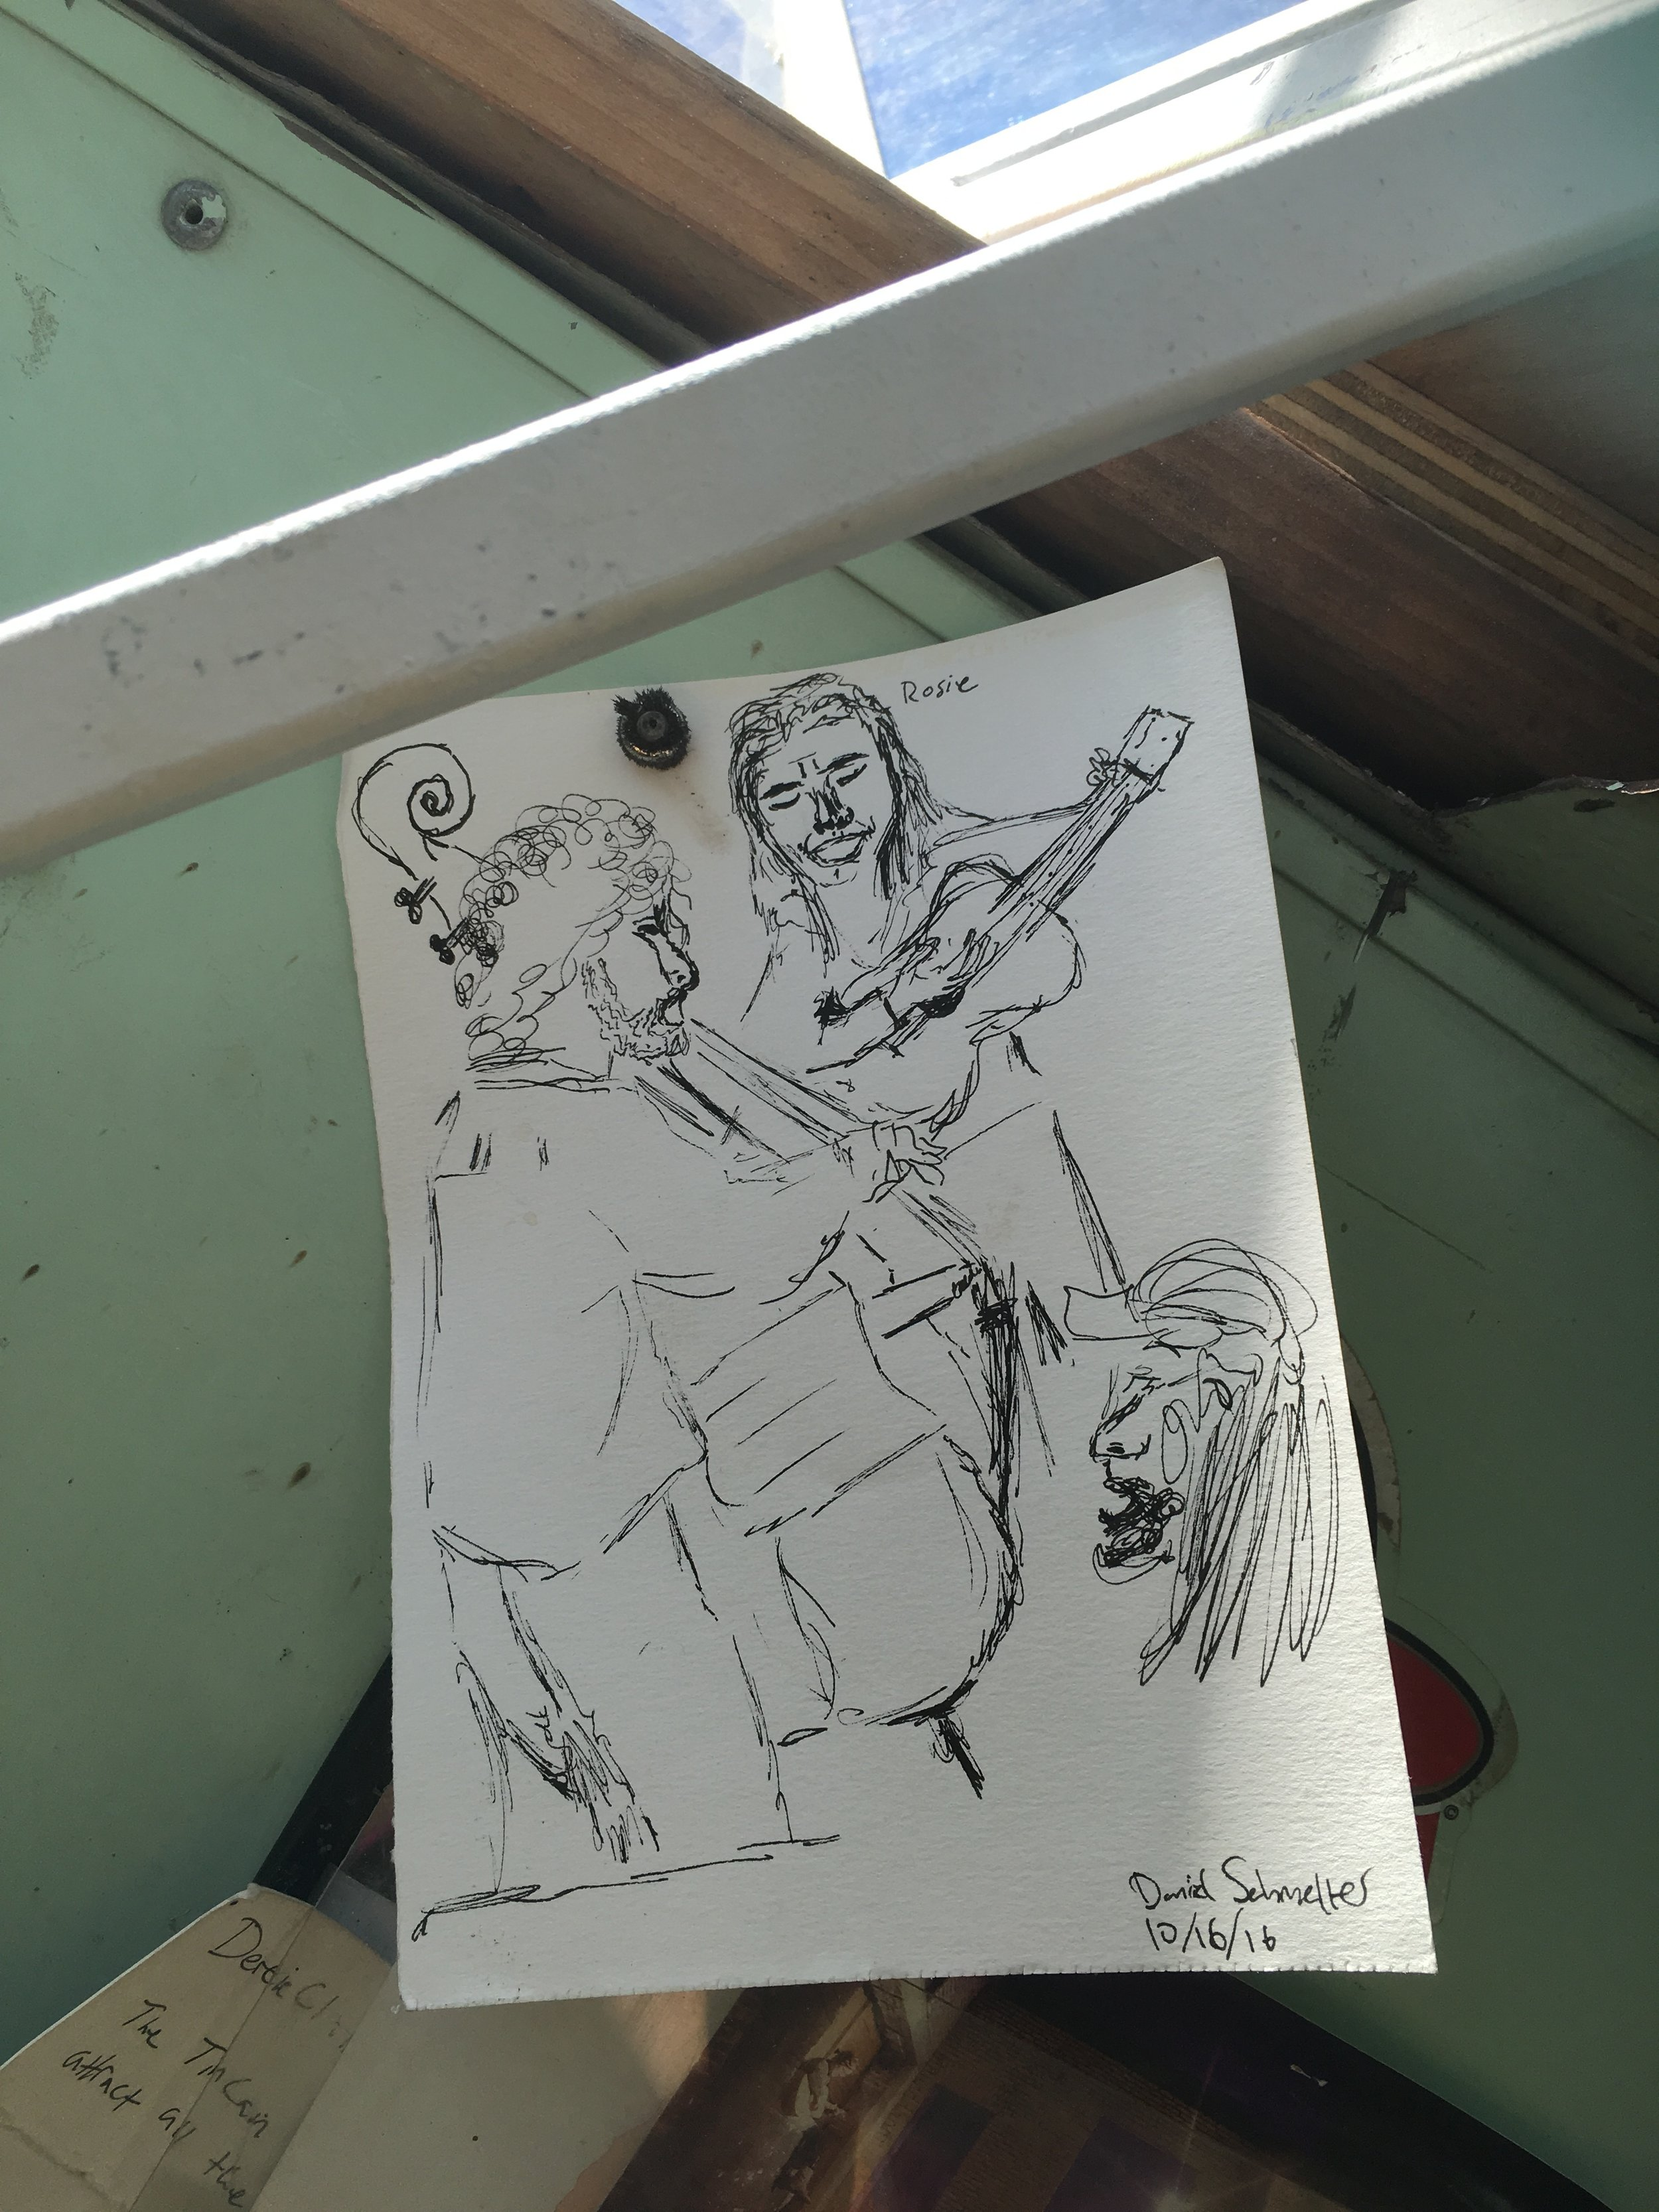 """Me, Jeff, and James as sketched by Dandelion (who, it appears, also goes by """"Daniel"""")"""